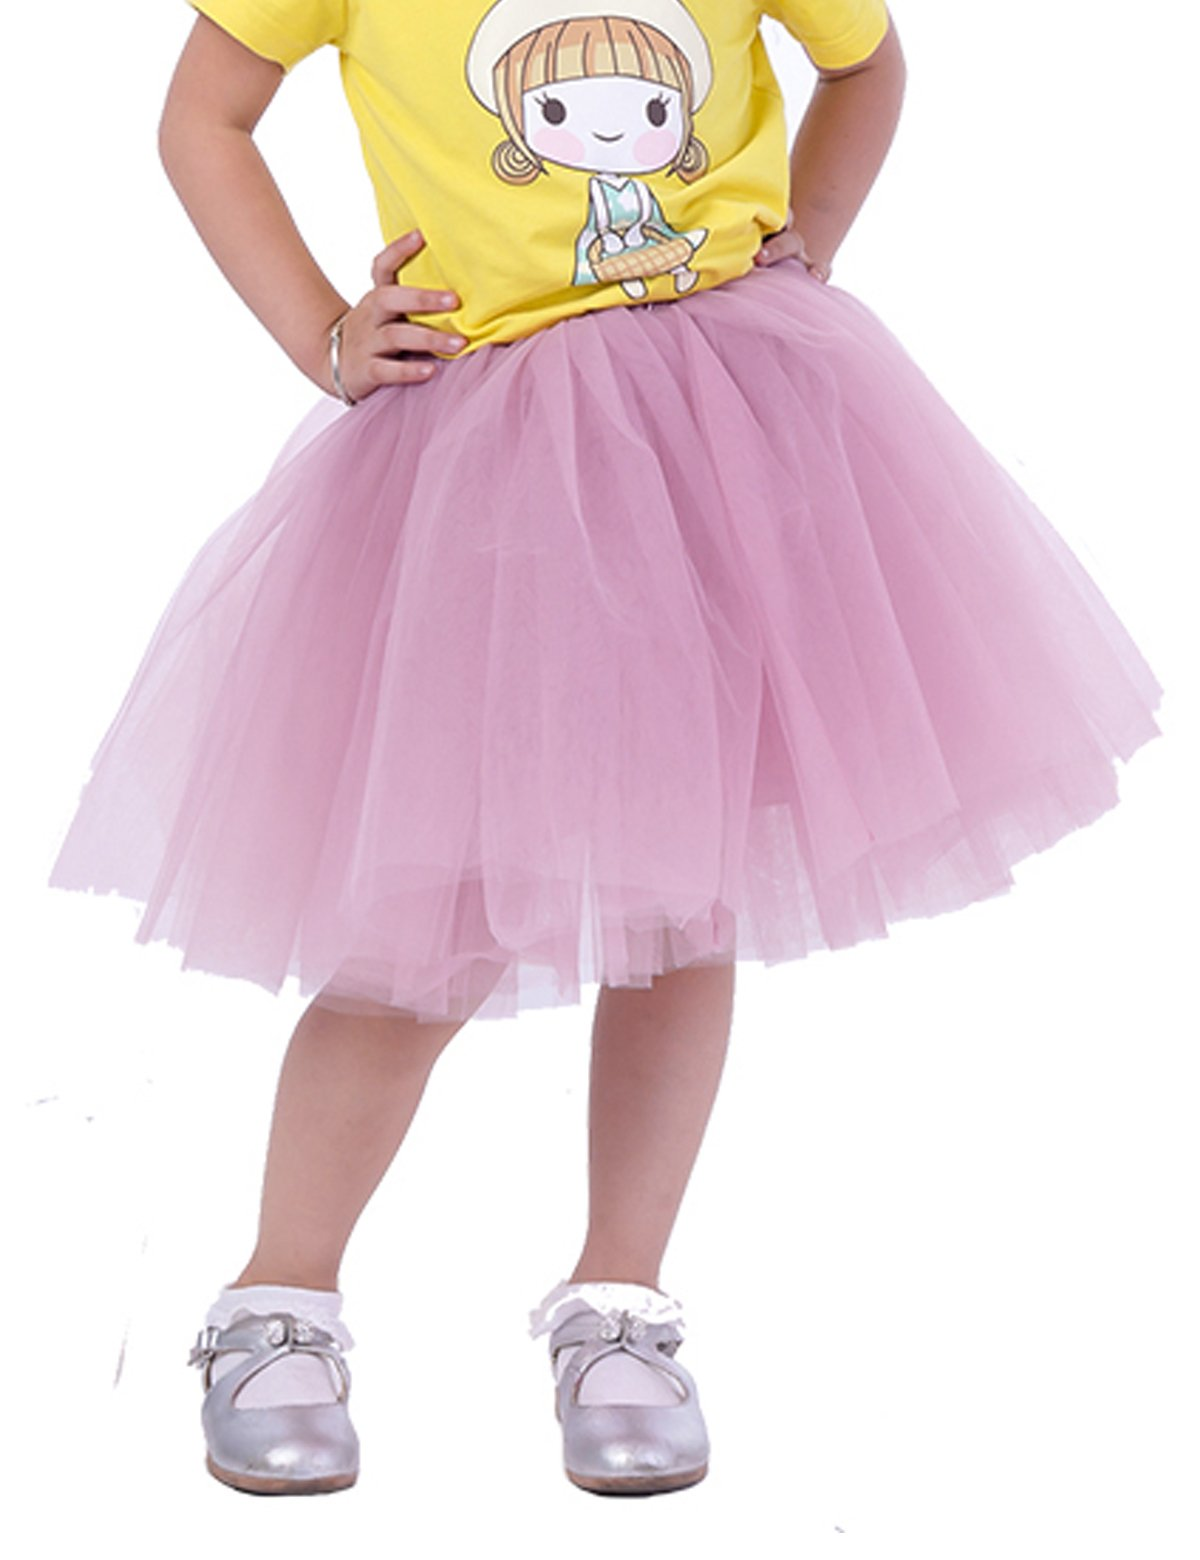 Classic 7 Layers Fluffy Baby Girls Tulle Skirt Princess Ballet Dance Tutu For Christmas Party, (Dusty Pink)  3-10T